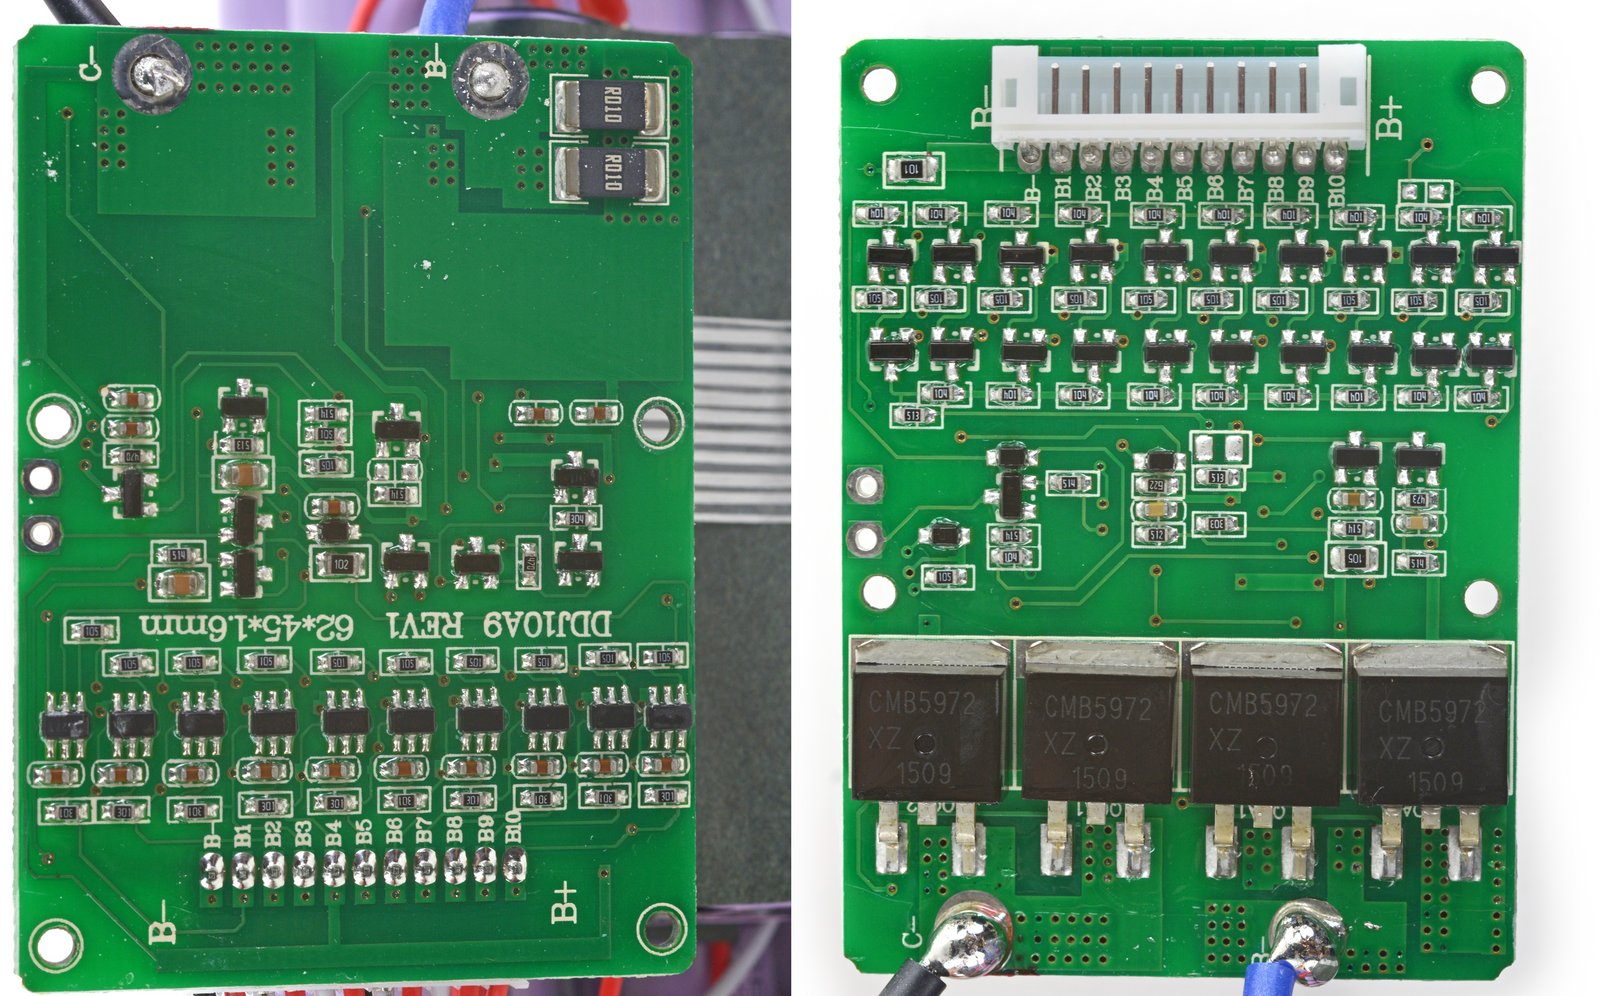 Swagboard Teardown What Makes A Safe Hoverboard Ifixit Rechargeable Lithiumion Batteries With Protection Circuit Board Pcb Li Ion Should Never Be Fully Discharged So Its Likely That The Battery Prevents Cells From Discharging Their Full Capacity